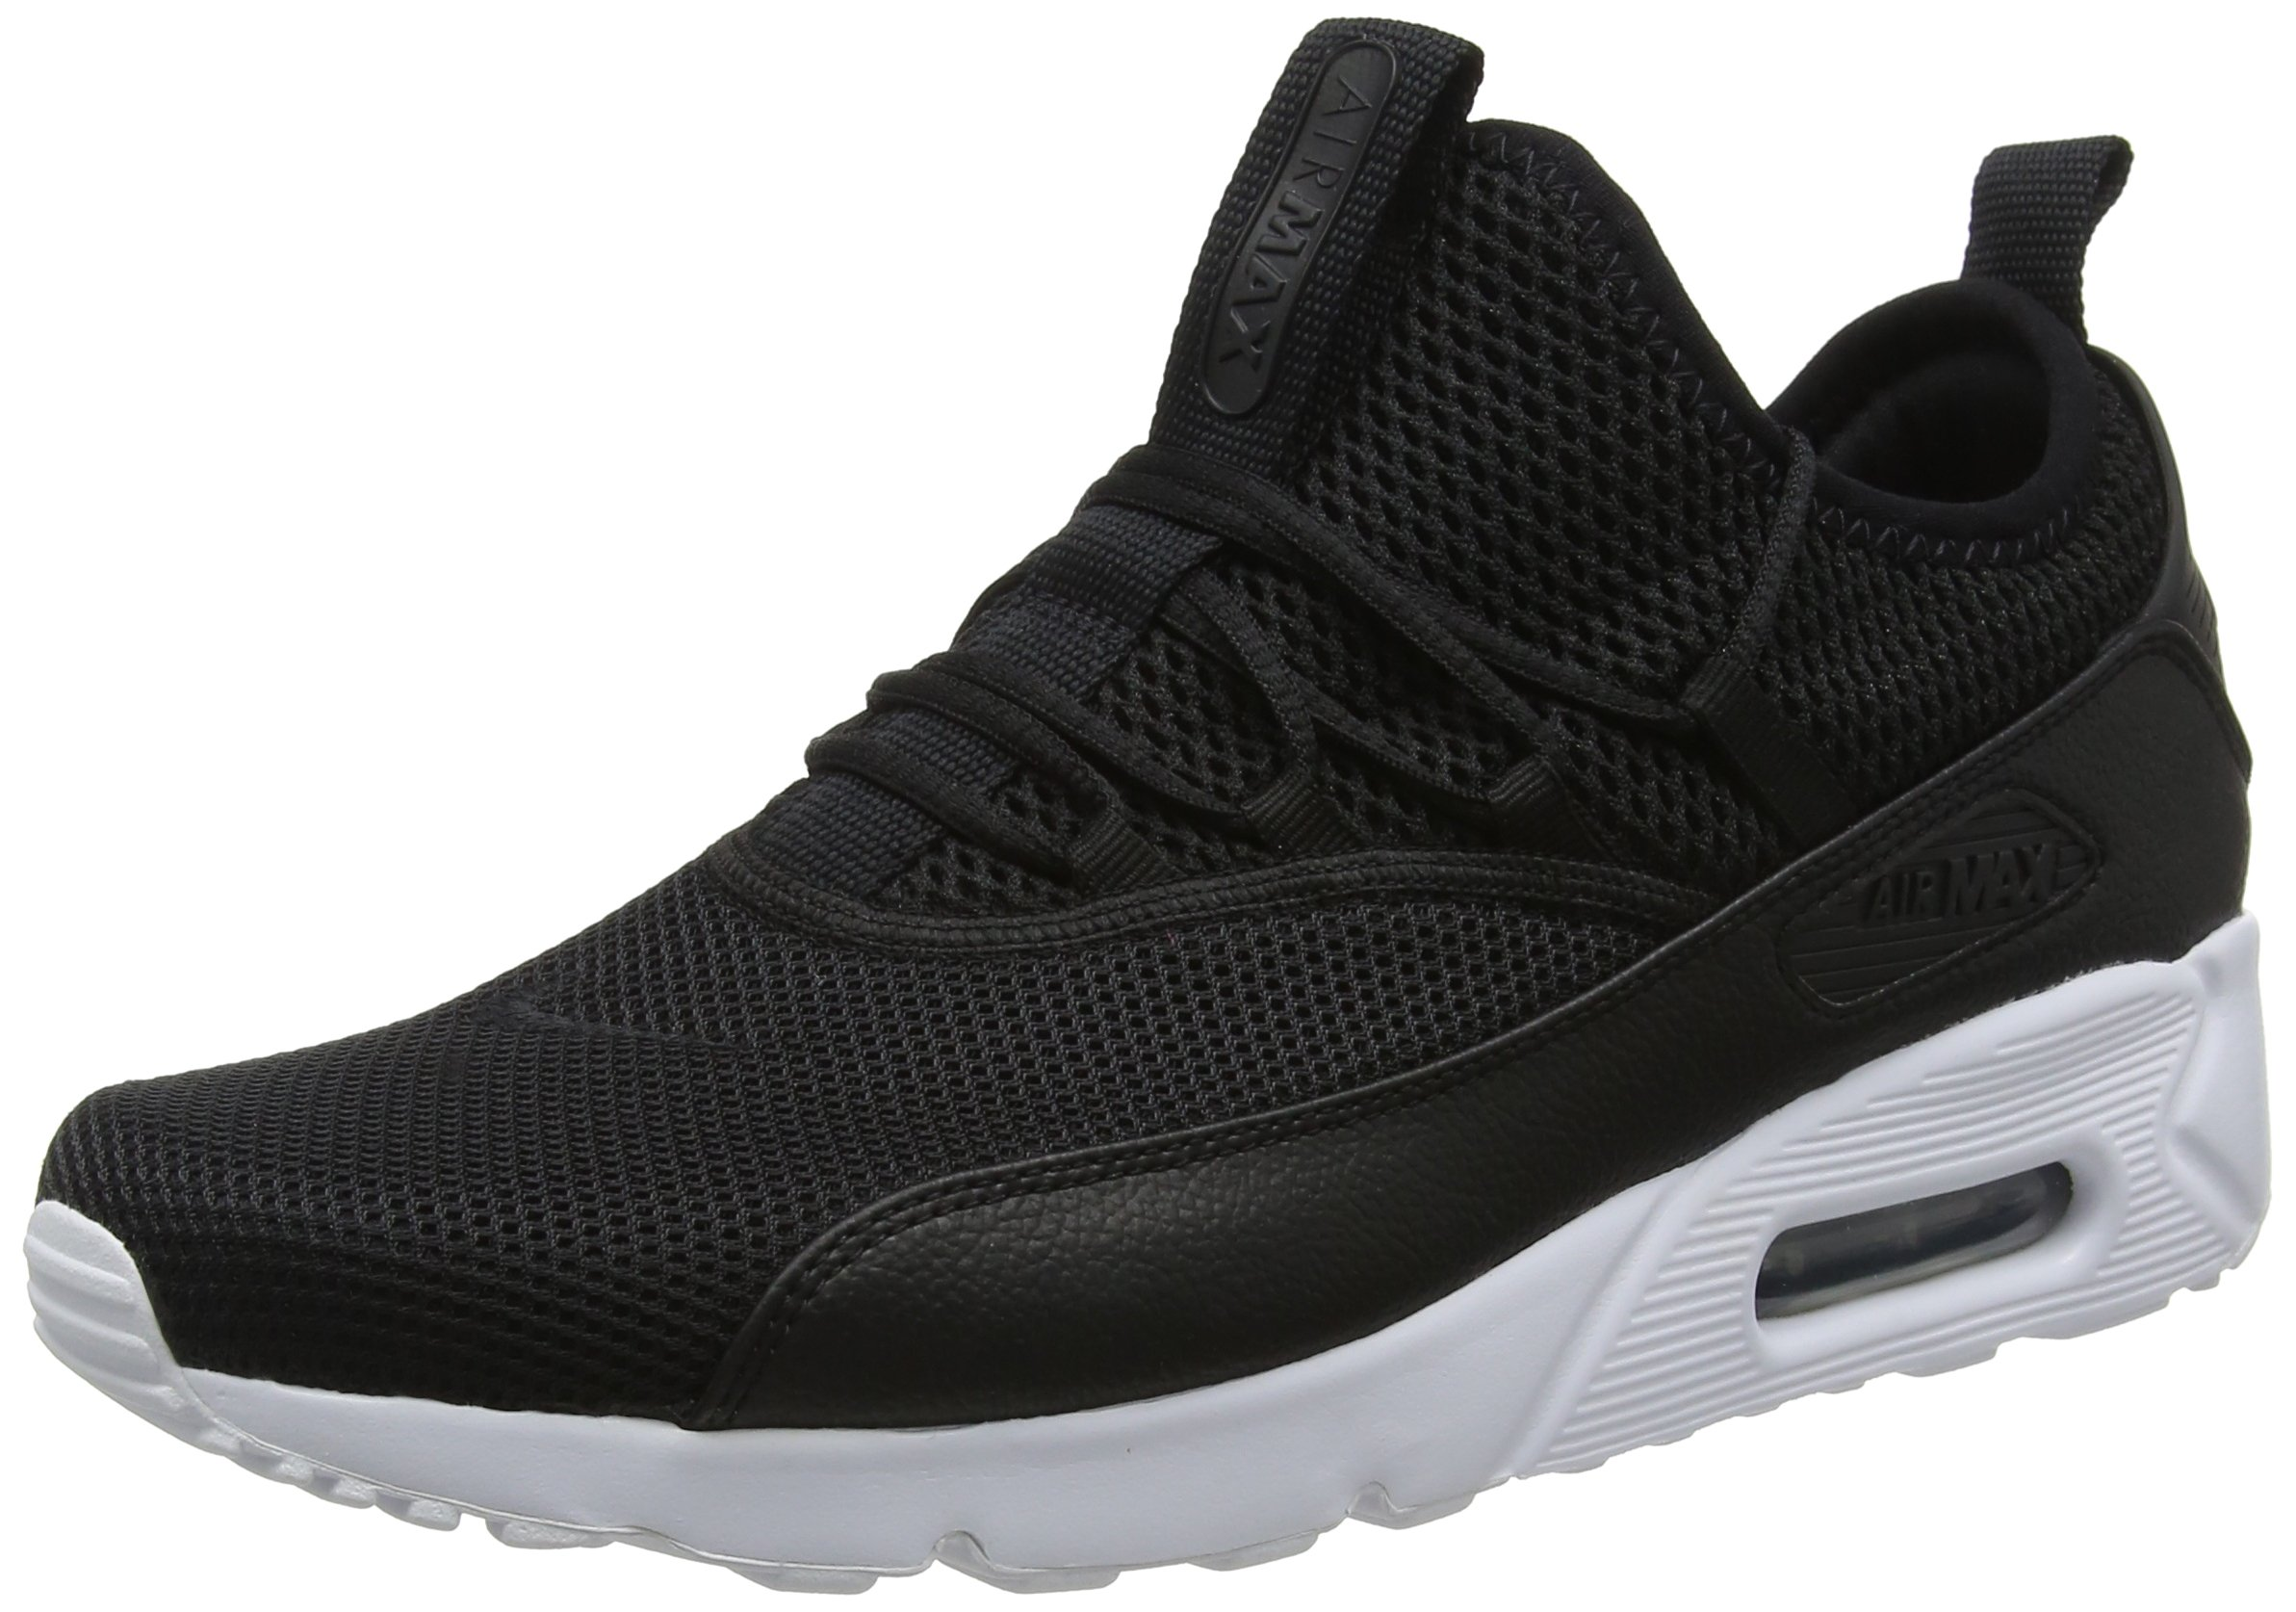 bccea43a17254 Galleon - Nike Mens Air Max 90 EZ Running Shoes Black White AO1745-001 Size  10.5